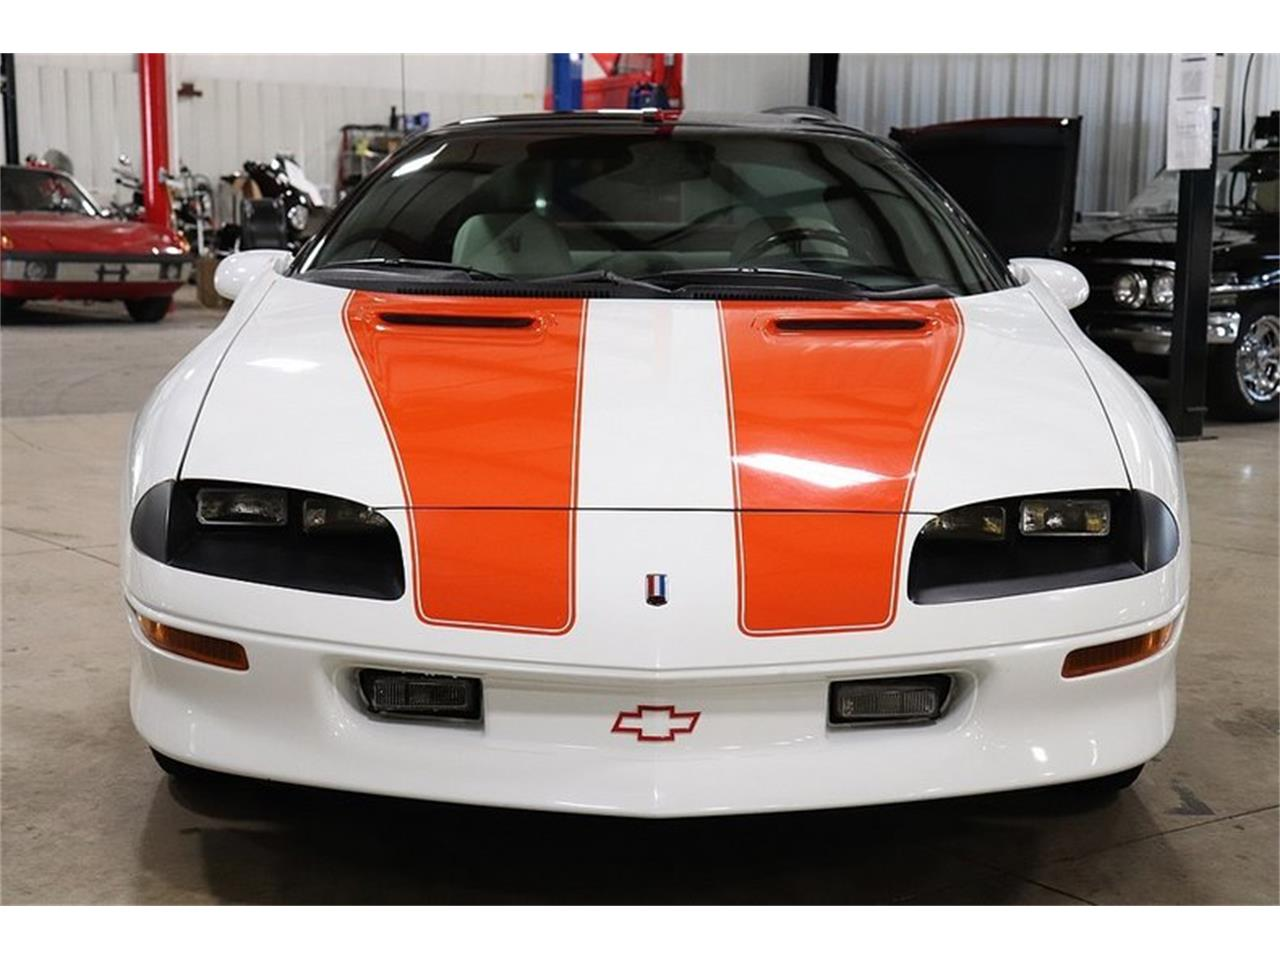 1997 Chevrolet Camaro Z28 for sale in Kentwood, MI – photo 8